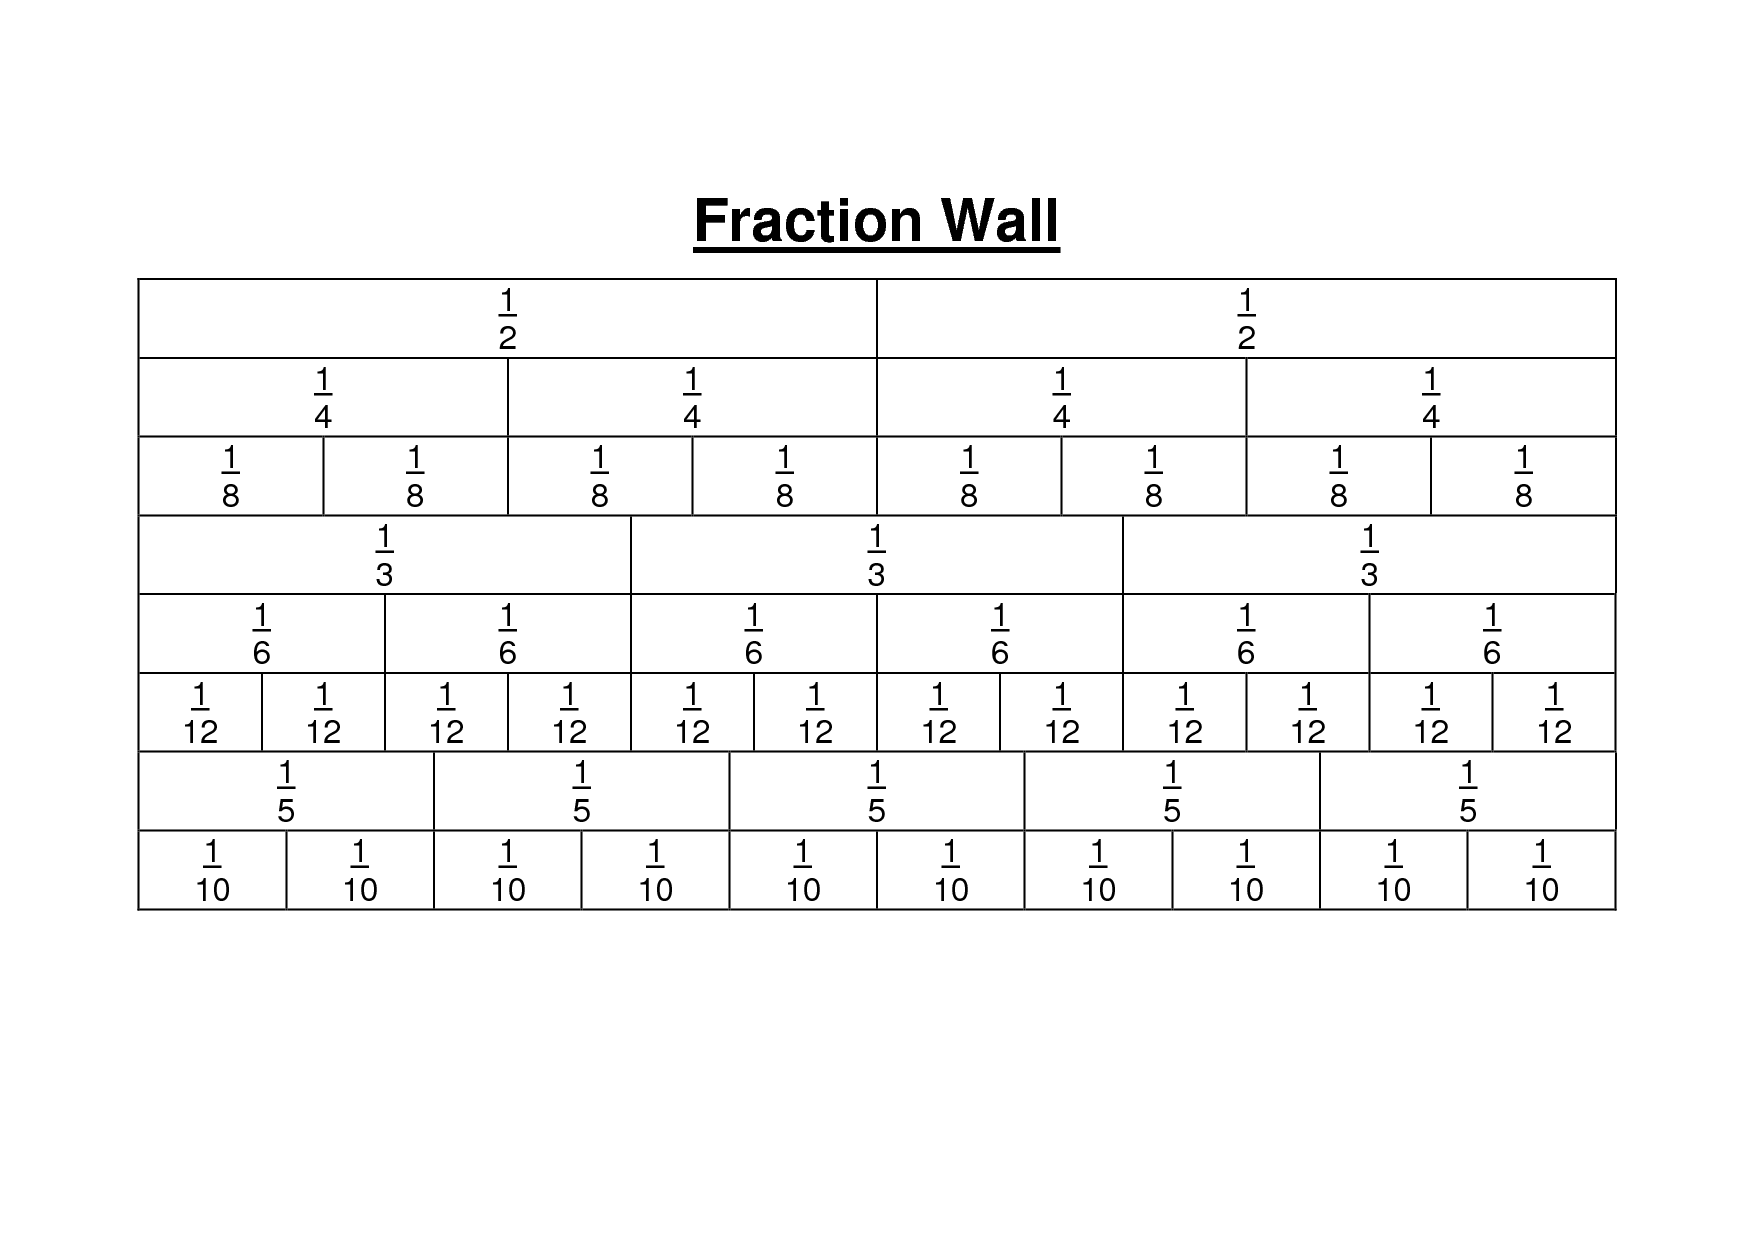 6 Best Images of Printable Fraction Wall - Blank Fraction Wall ...